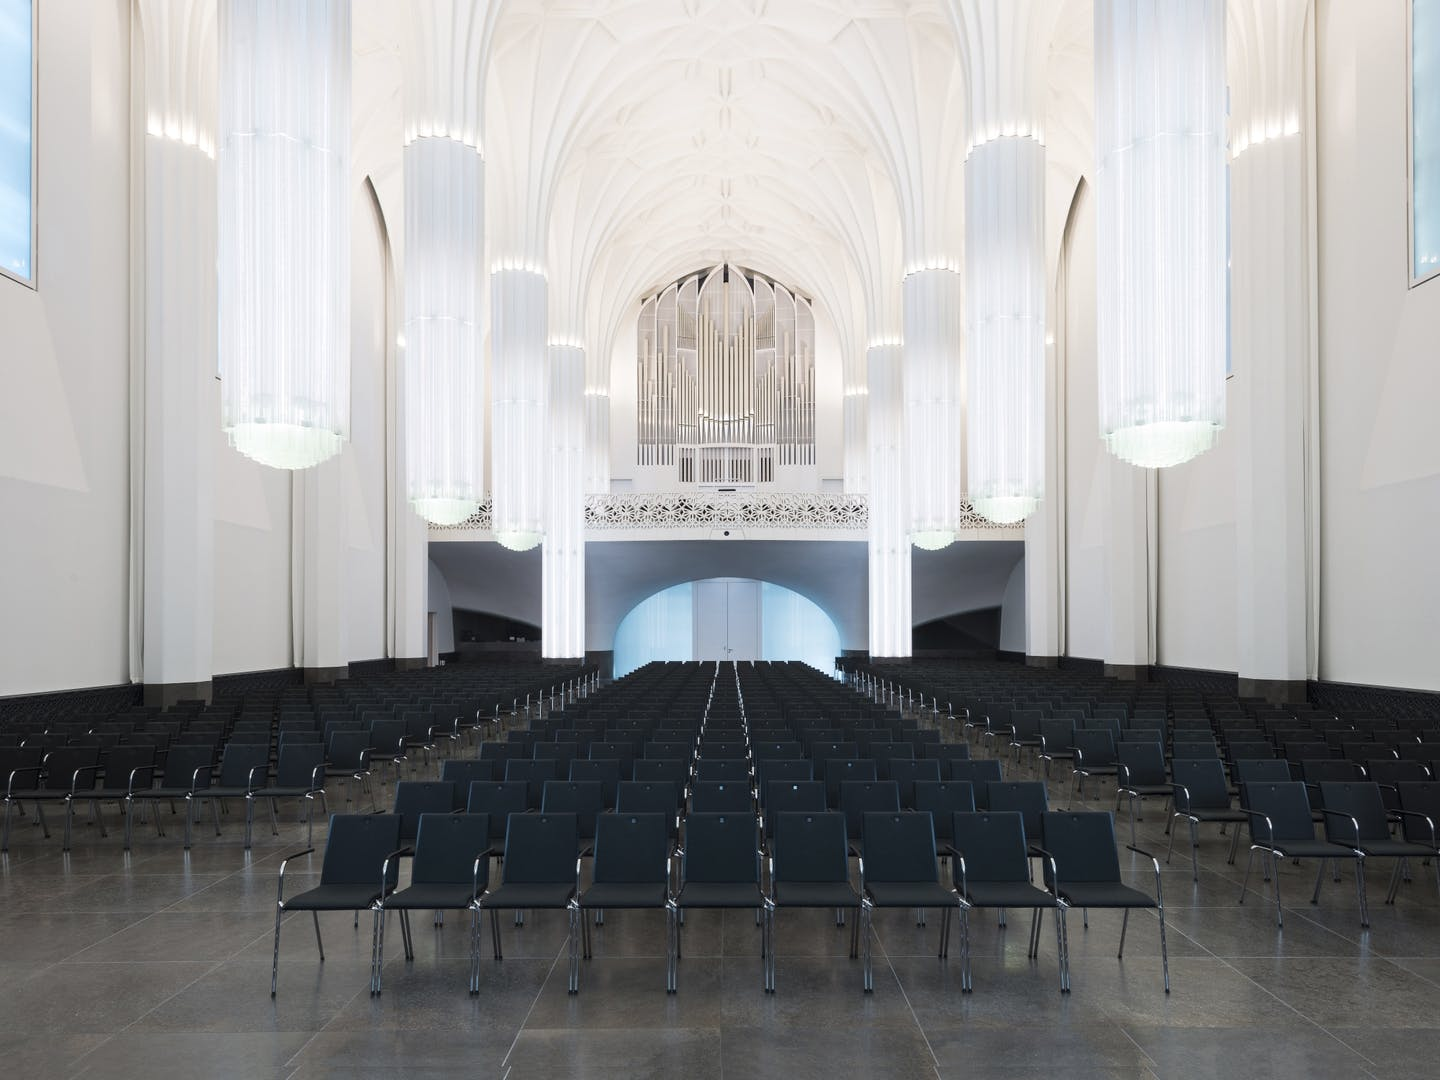 Event room with row seating